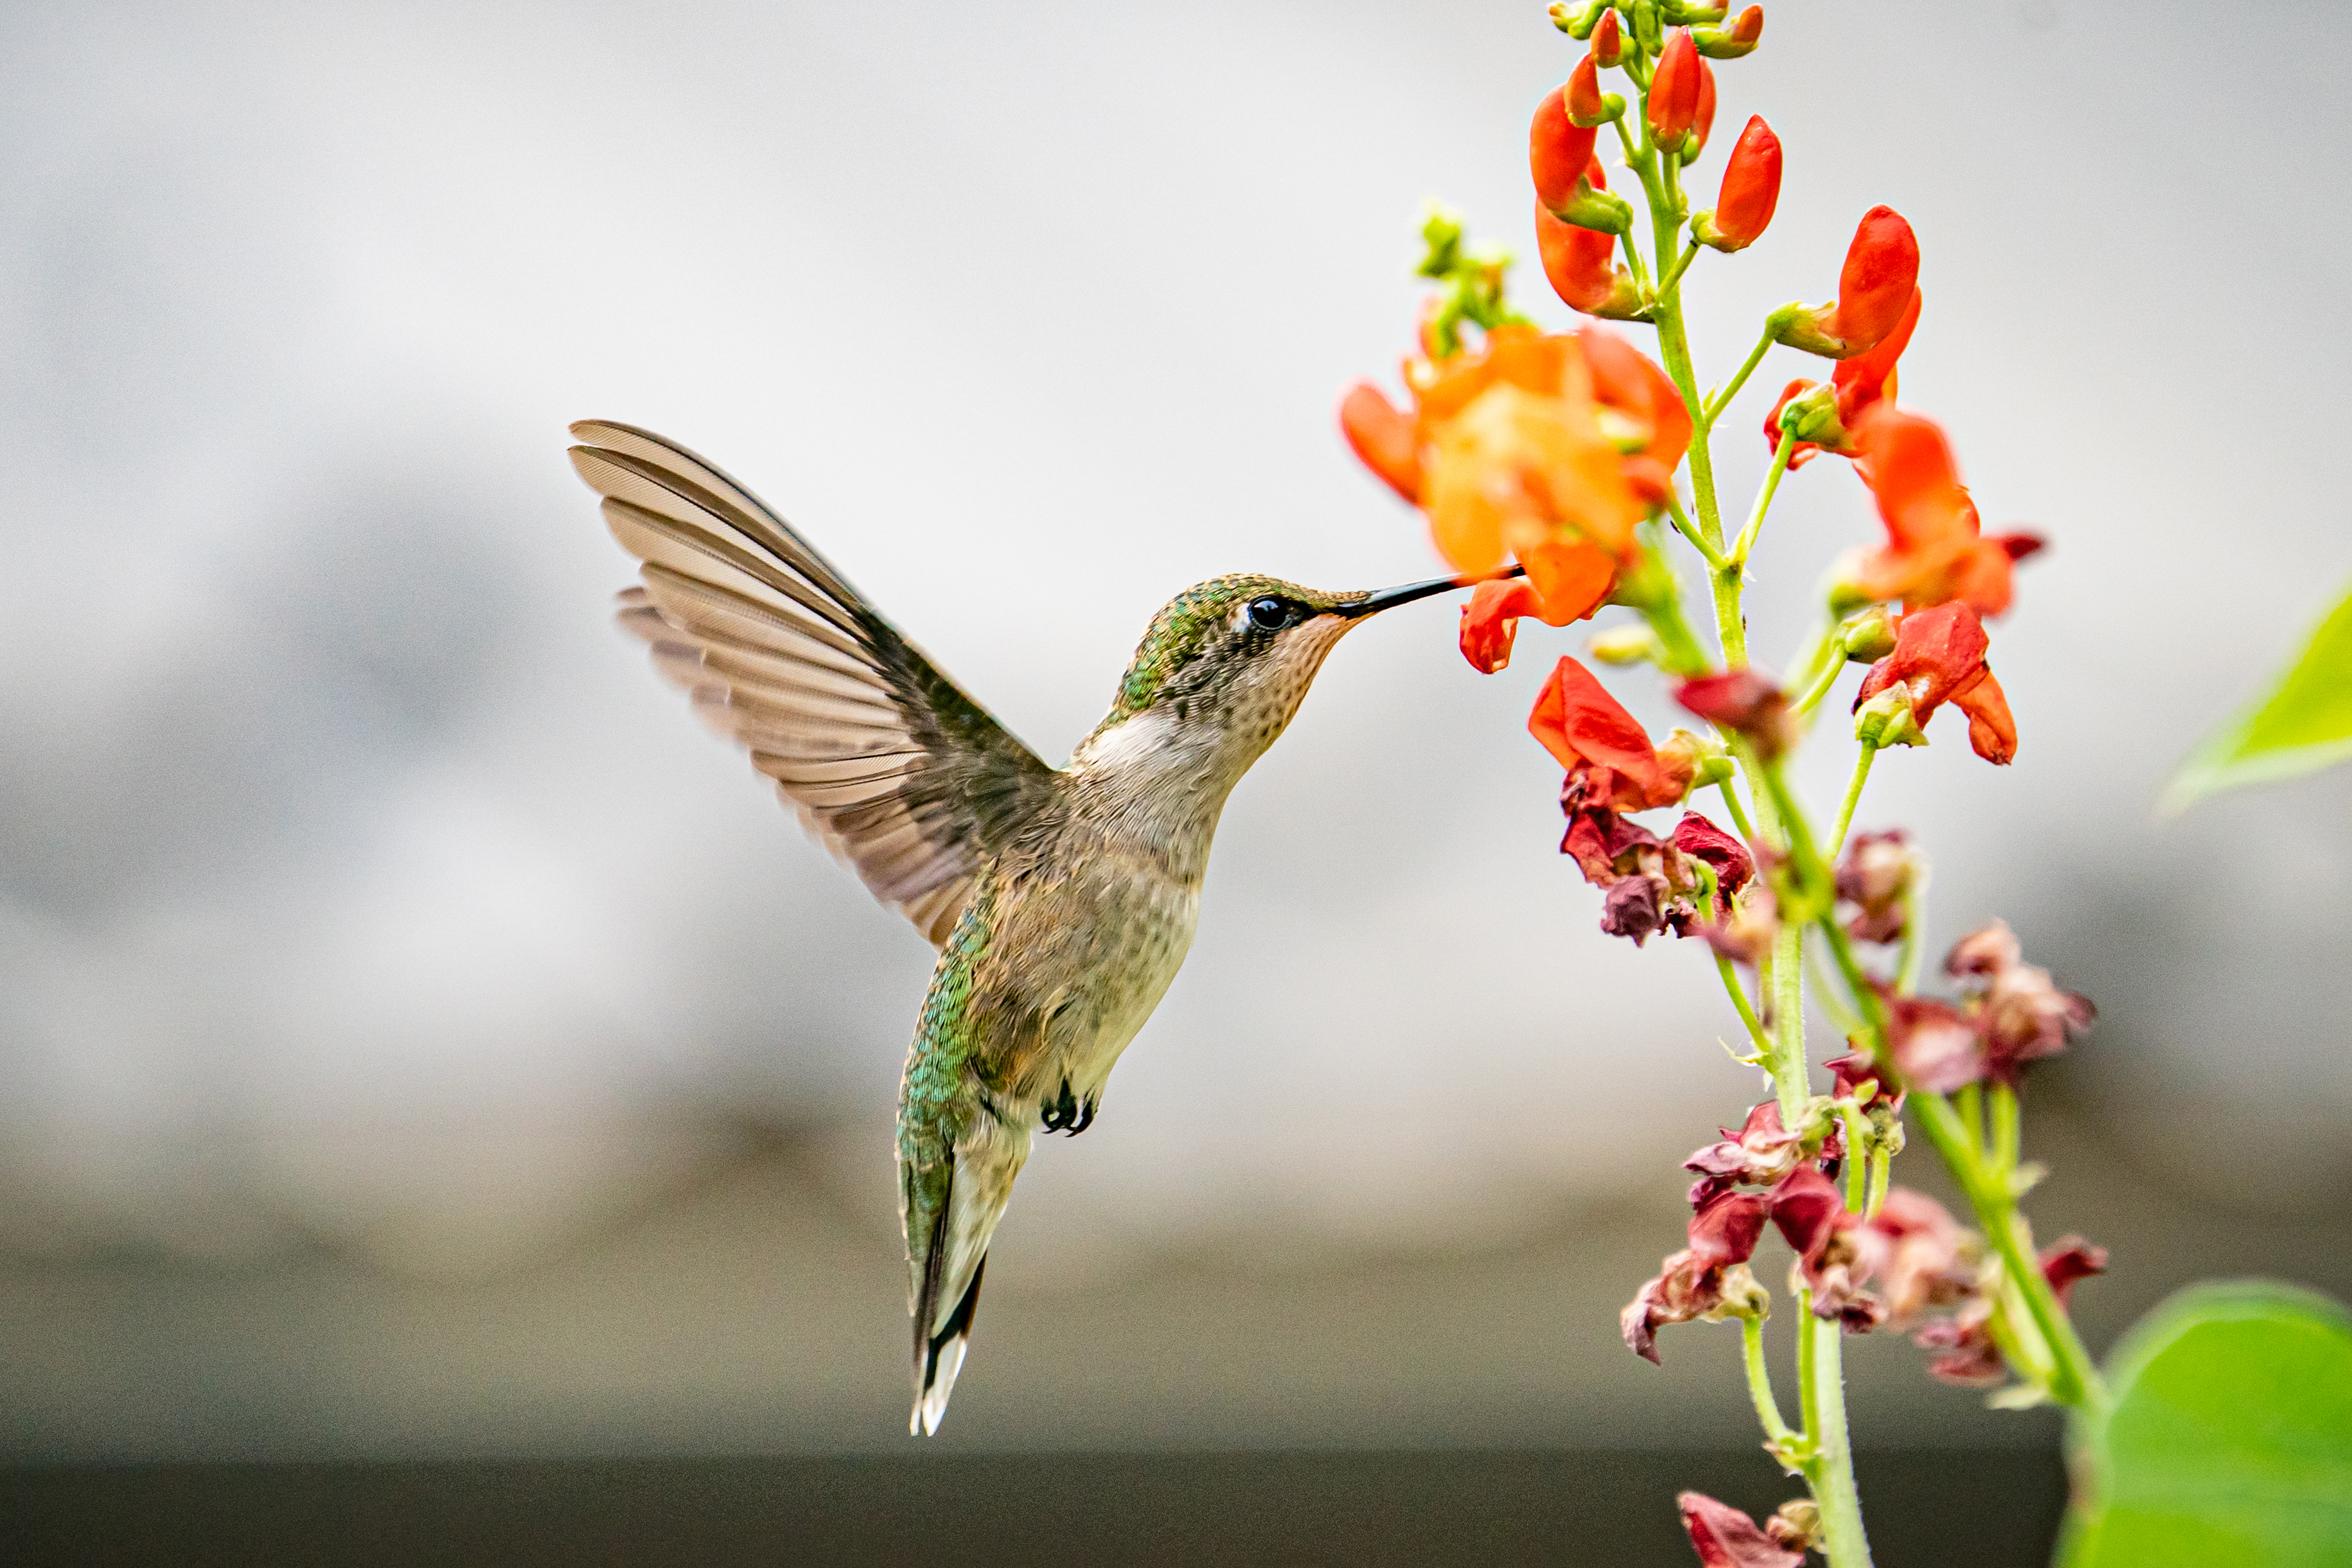 Female ruby-throated hummingbird hovering by an orange flower